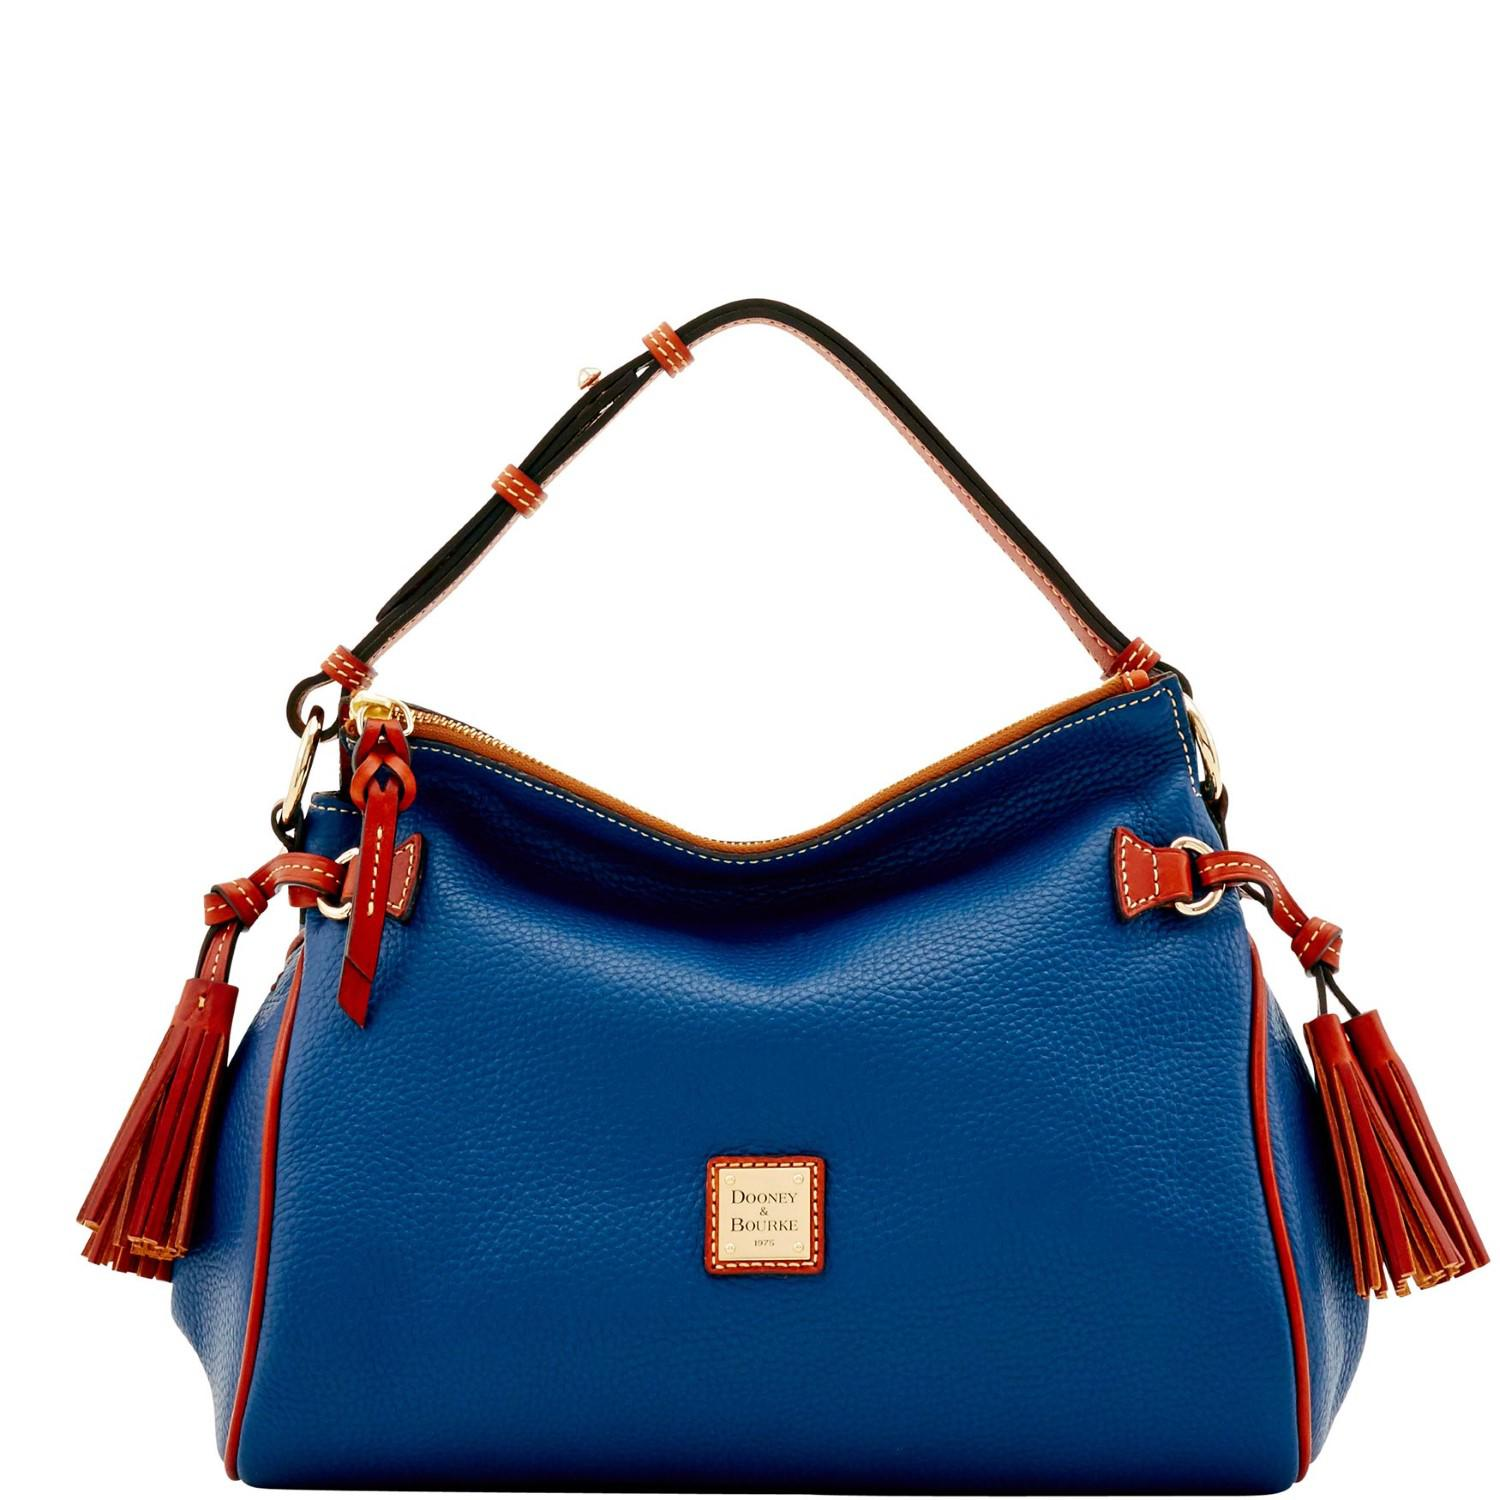 5dae6084b Lyst - Dooney & Bourke Pebble Grain Medium Zip Hobo in Blue